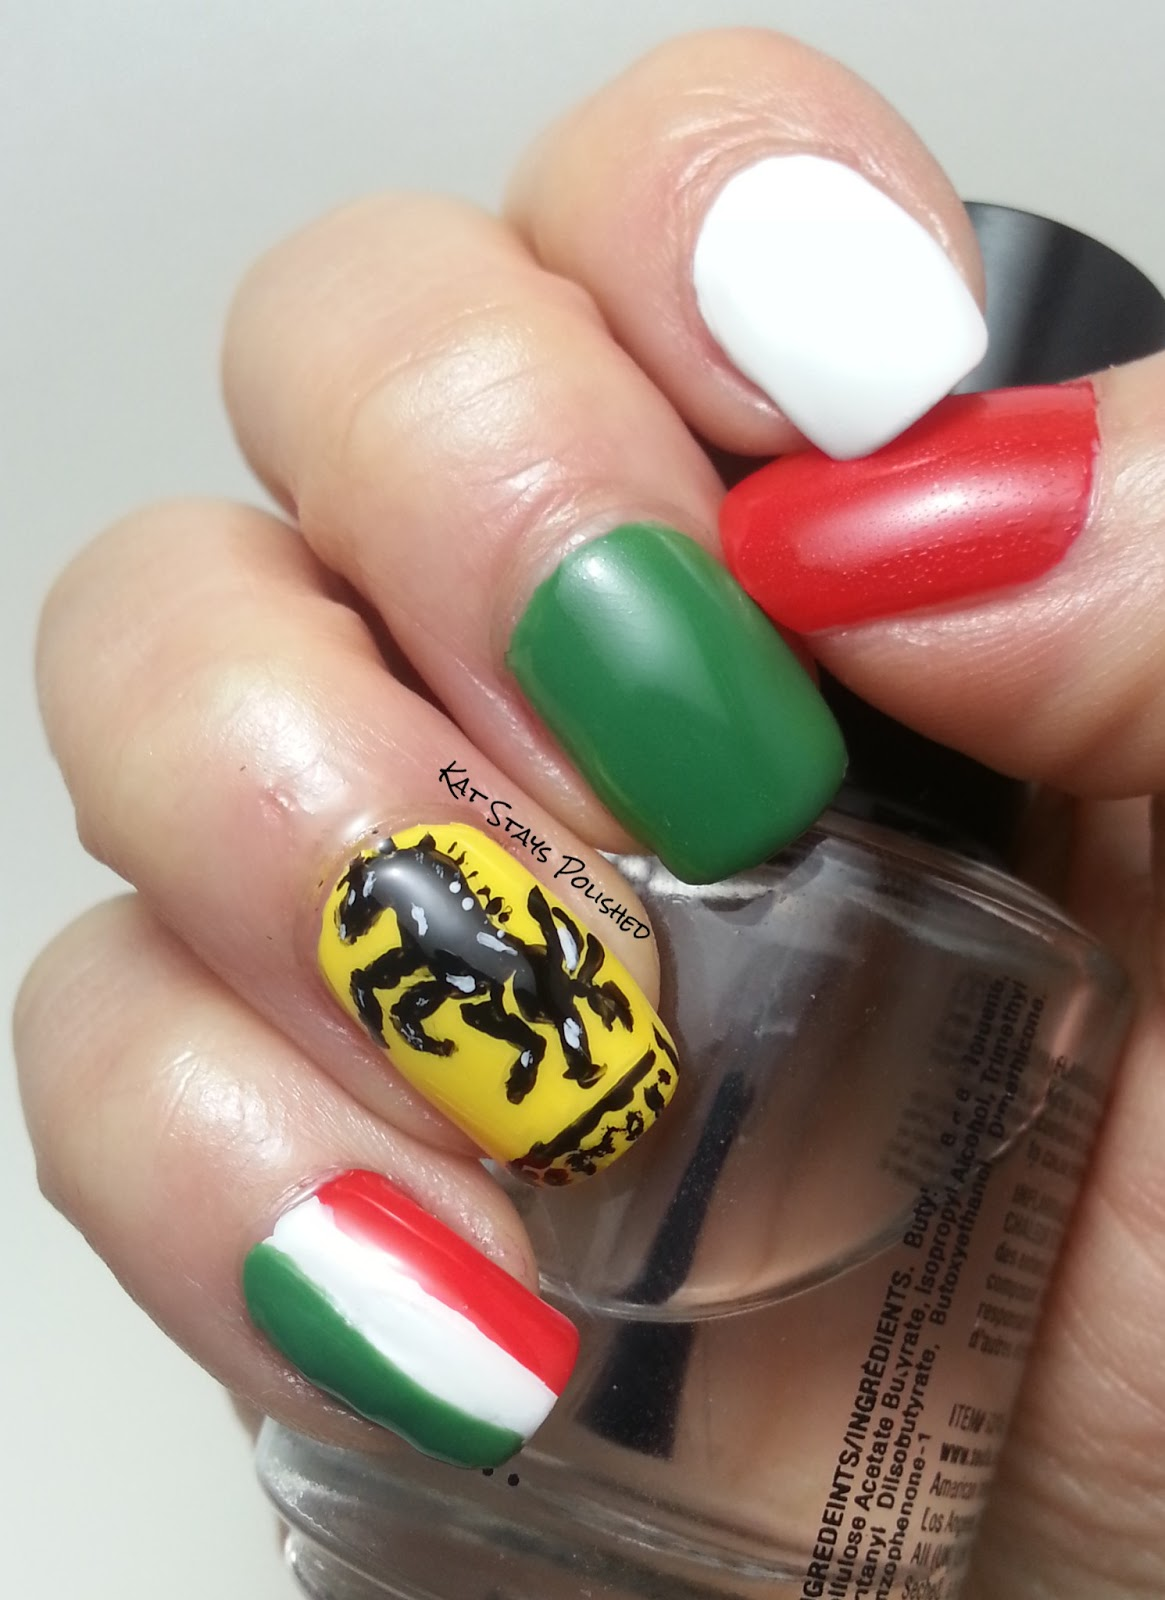 Kat Stays Polished | Beauty Blog with a Dash of Life: Ferrari Nail ...